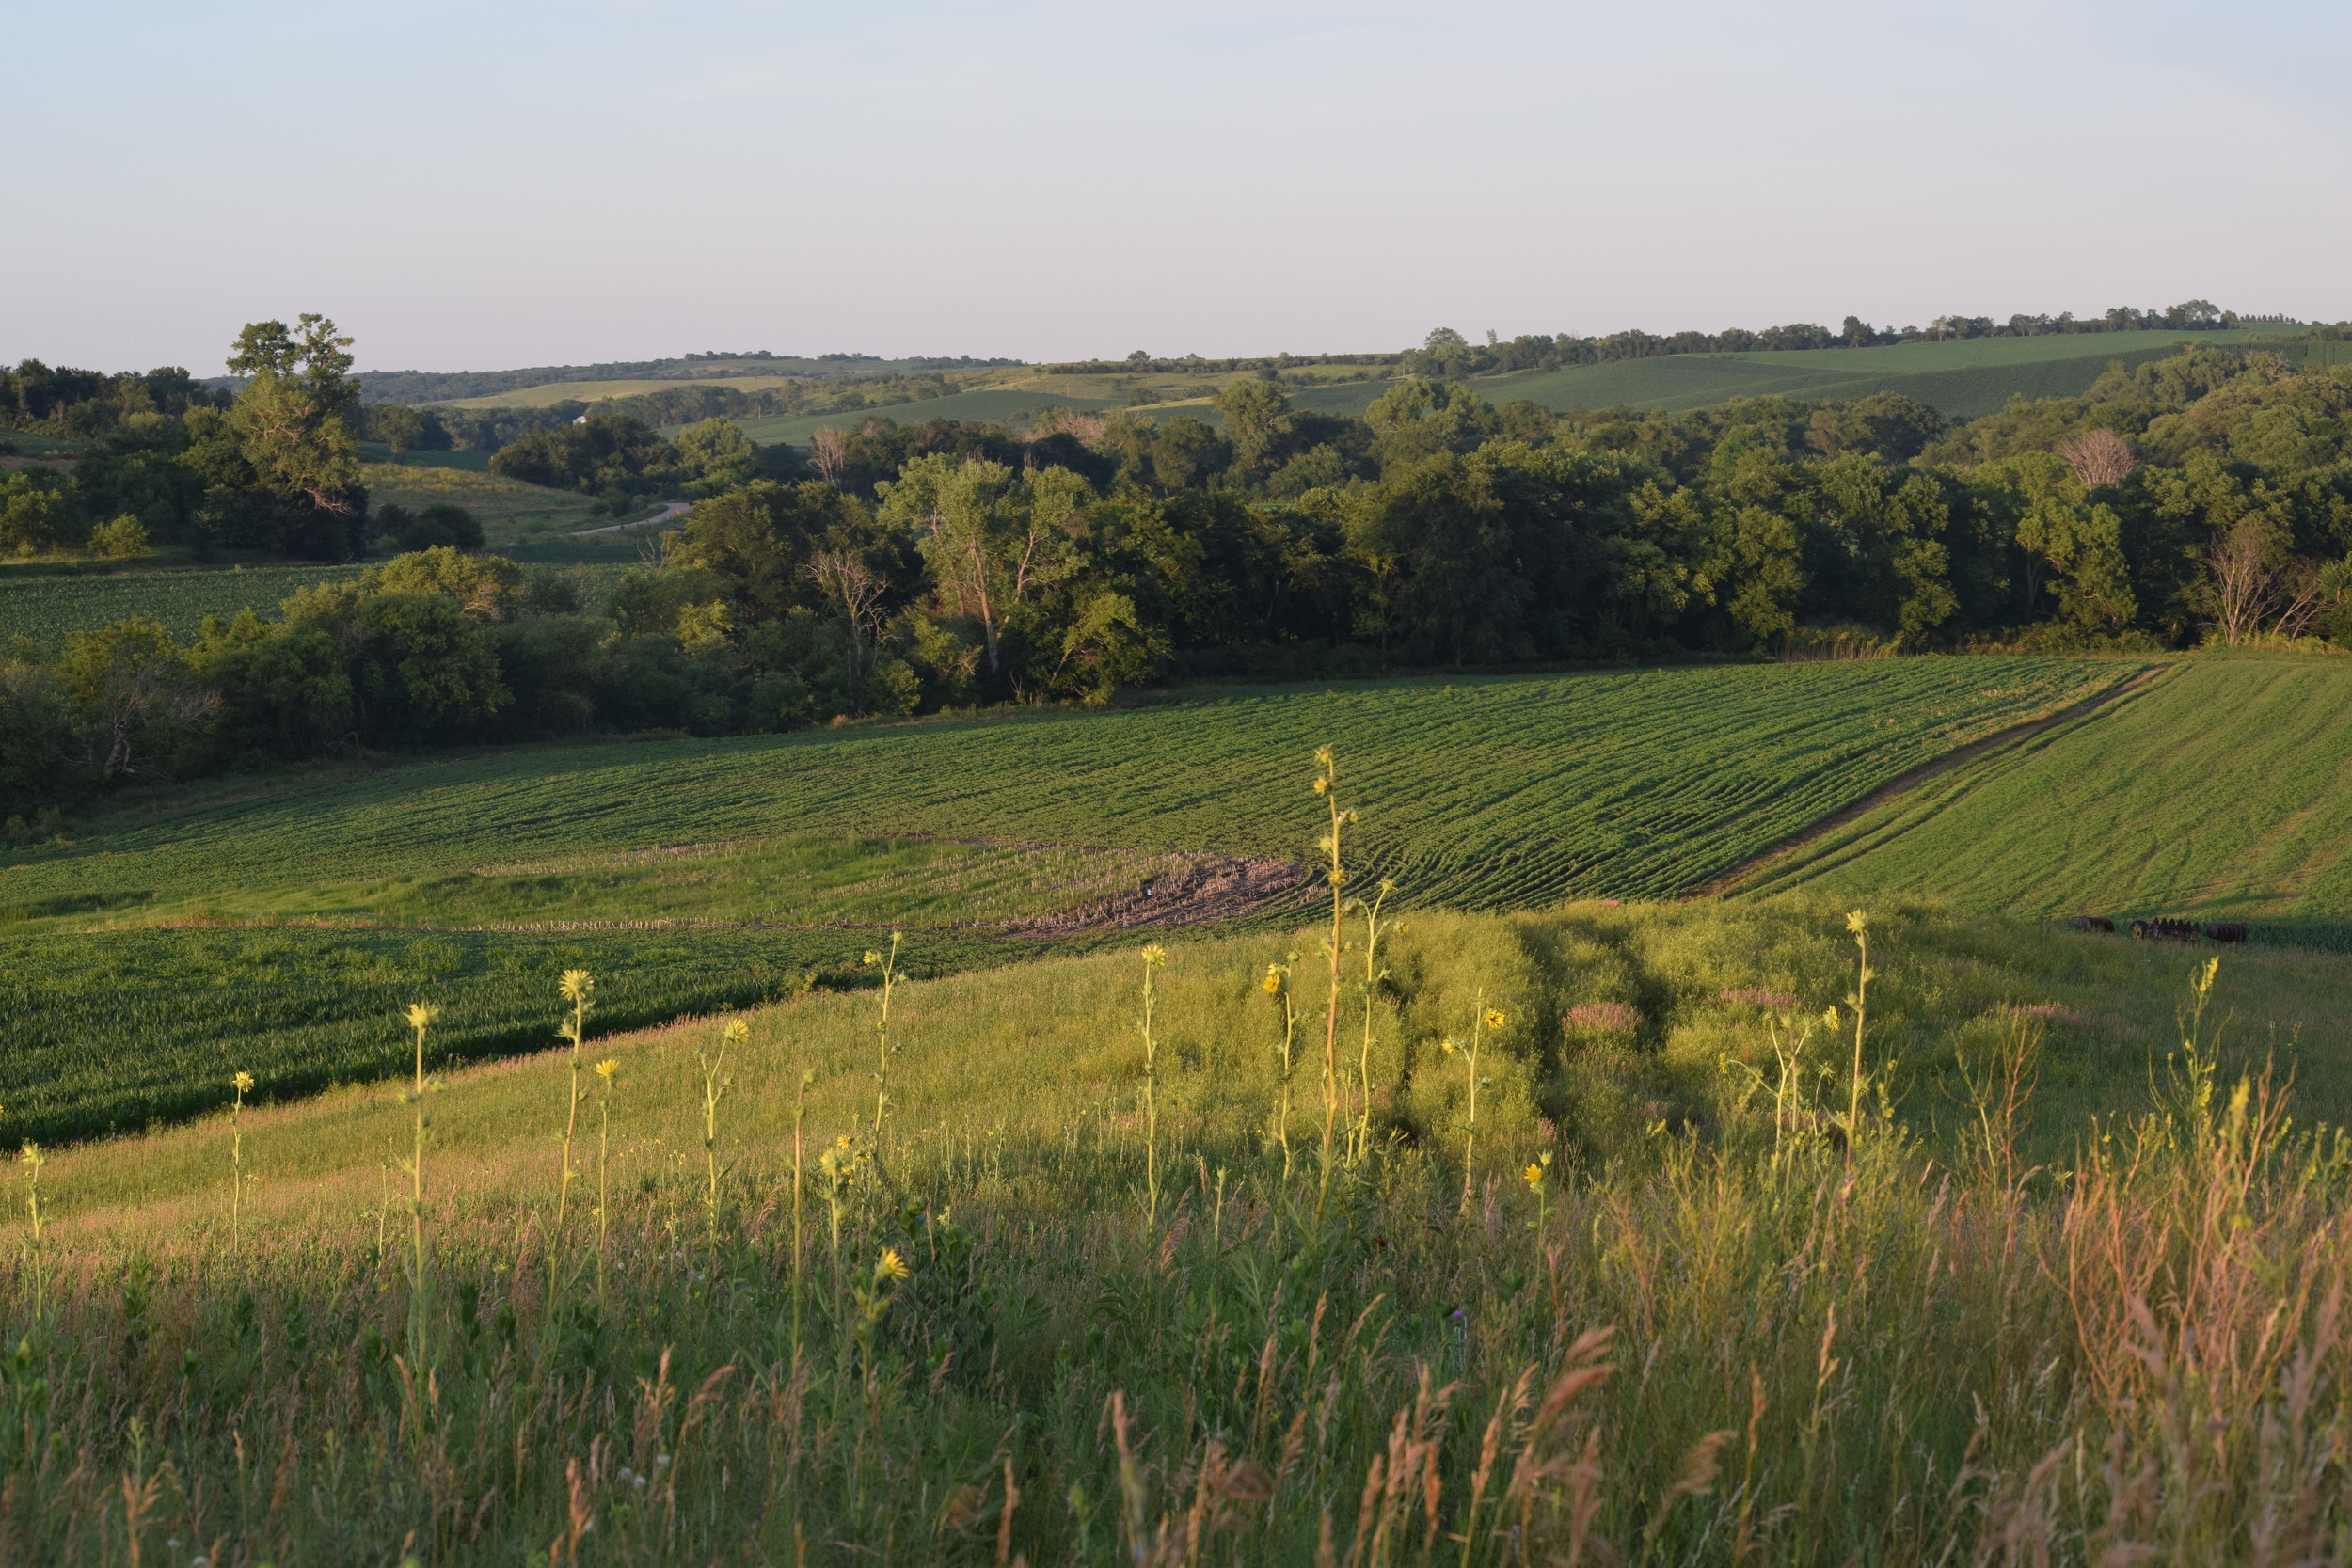 I had high hopes of this secluded bean field being a food source for a mature buck.